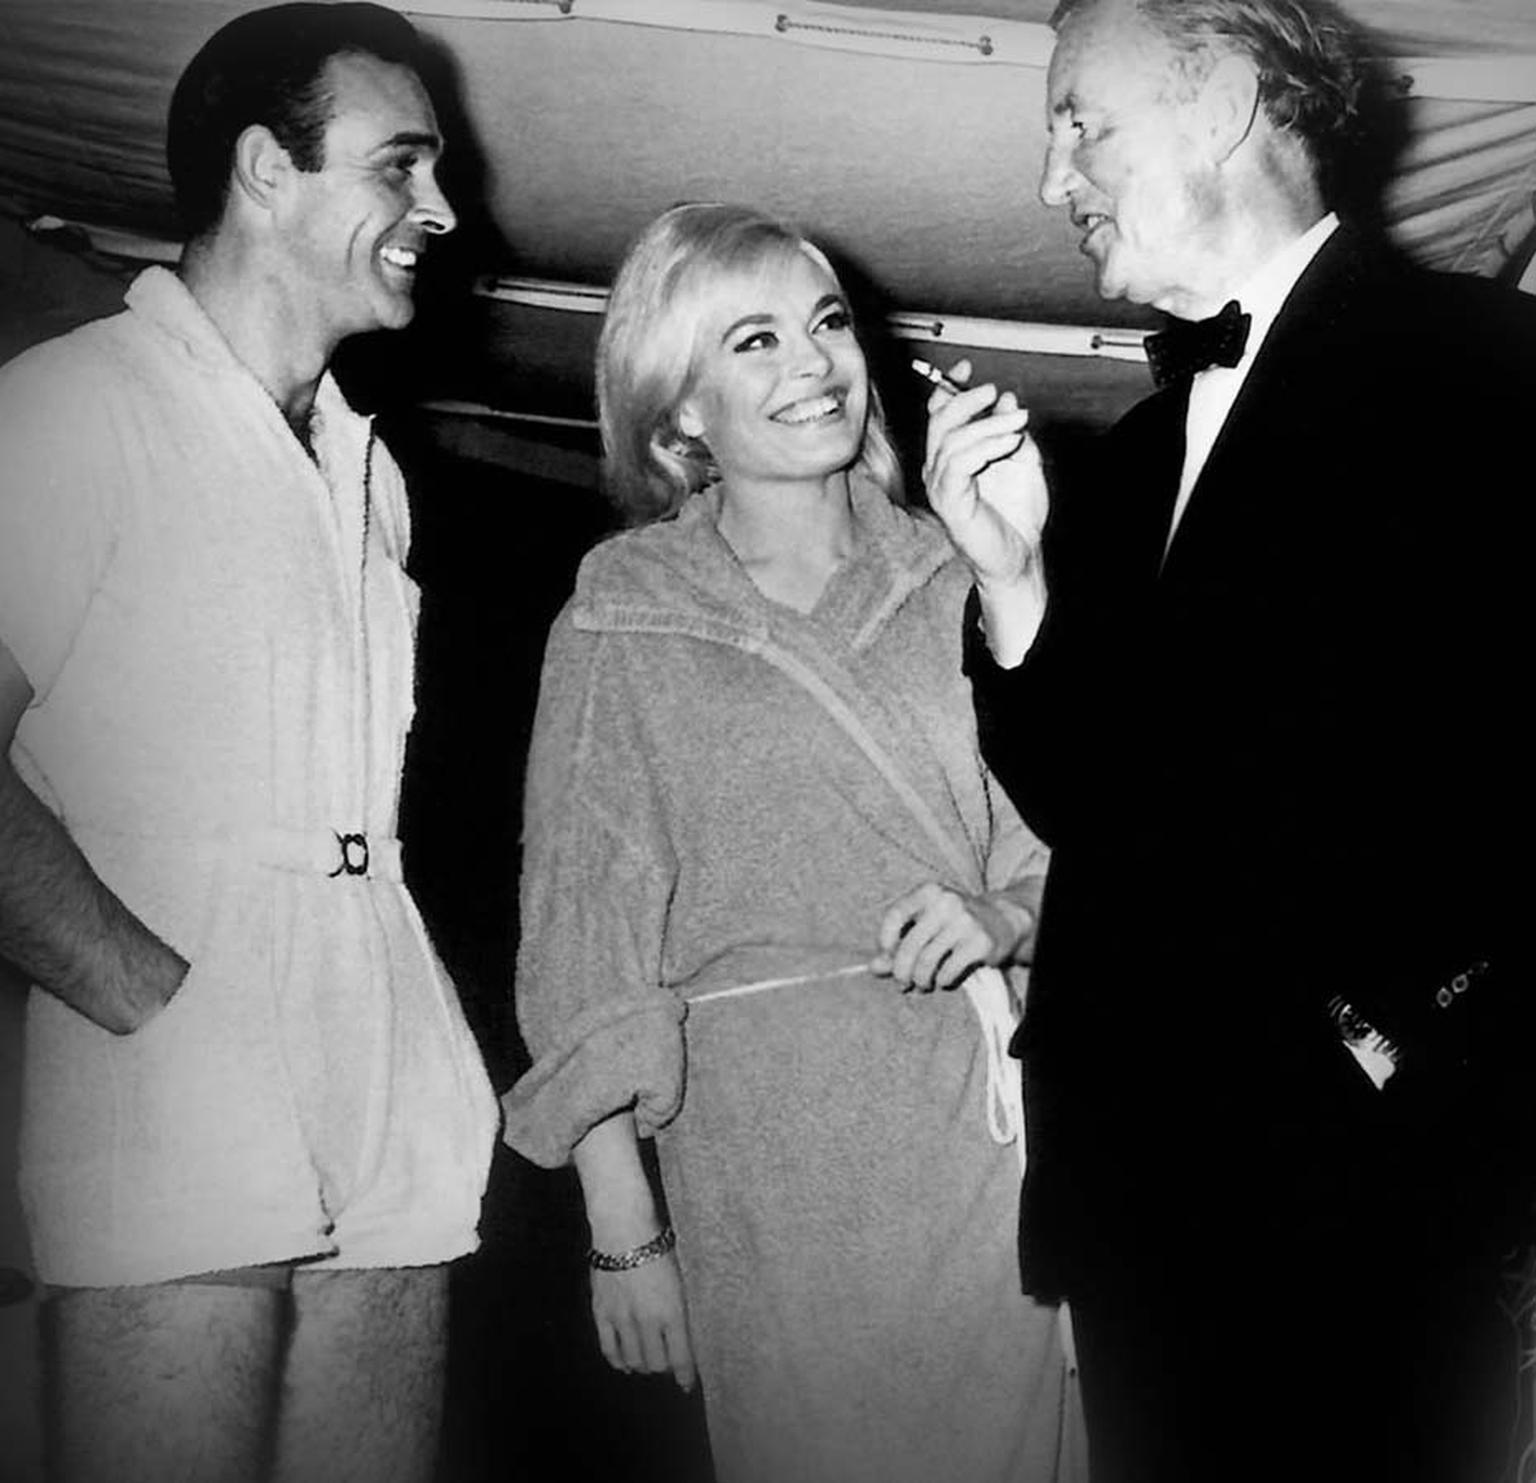 Ian Fleming chatting with Sean Connery and Honor Blackman on the set of Goldfinger. Fleming was a die-hard Rolex fan, with his watch of choice being the Rolex Oyster Explorer.